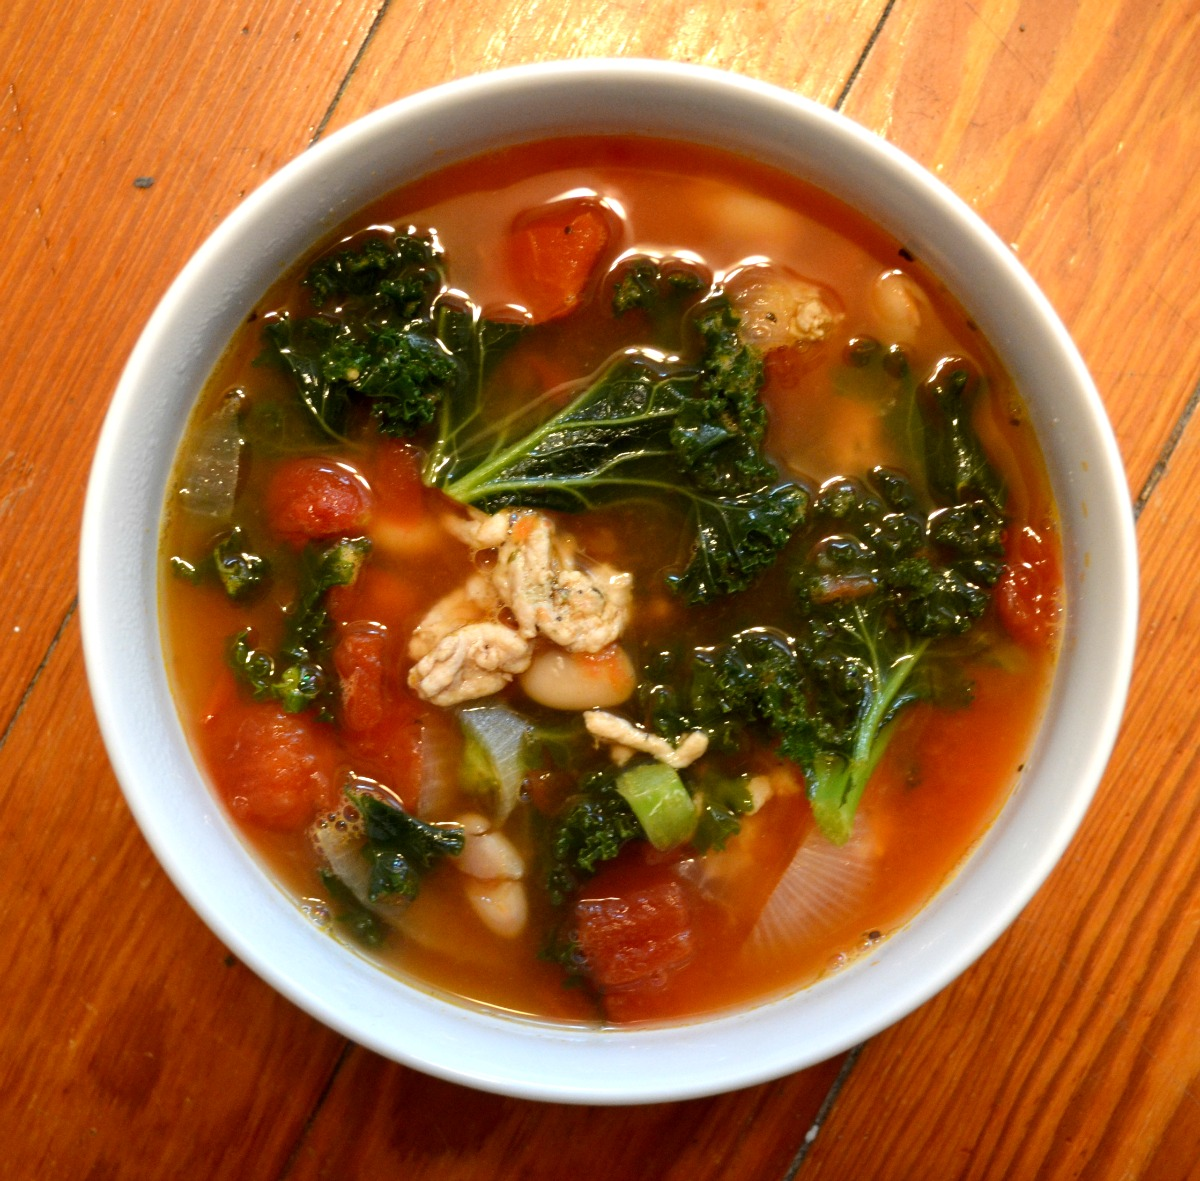 Warm Up With This Healthy Soup Recipe